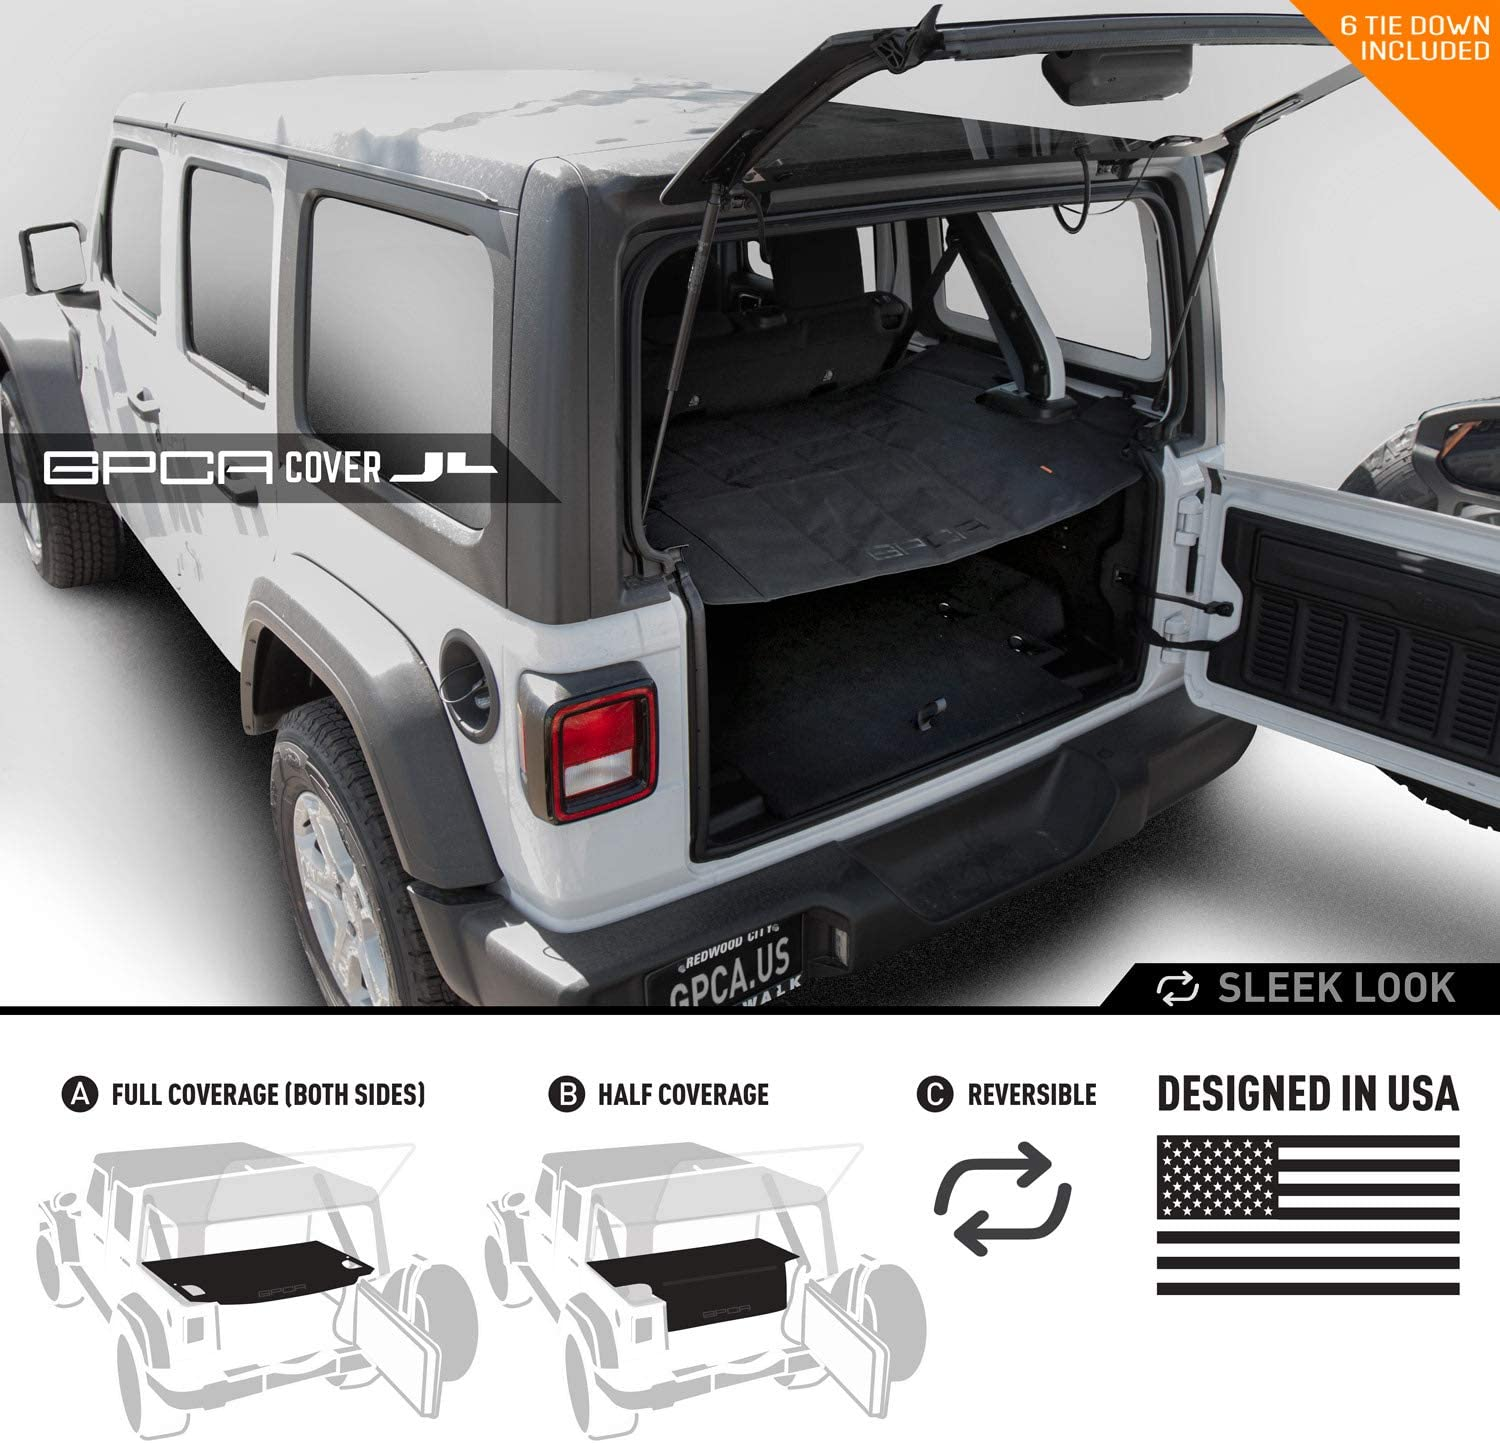 Amazon Com Gpca Wrangler 2018 2020 Jl Unlimited Cargo Cover Pro Reversible For Top On Topless 4dr Jl Sports Sahara Freedom Rubicon Softtop Hardtop Automotive